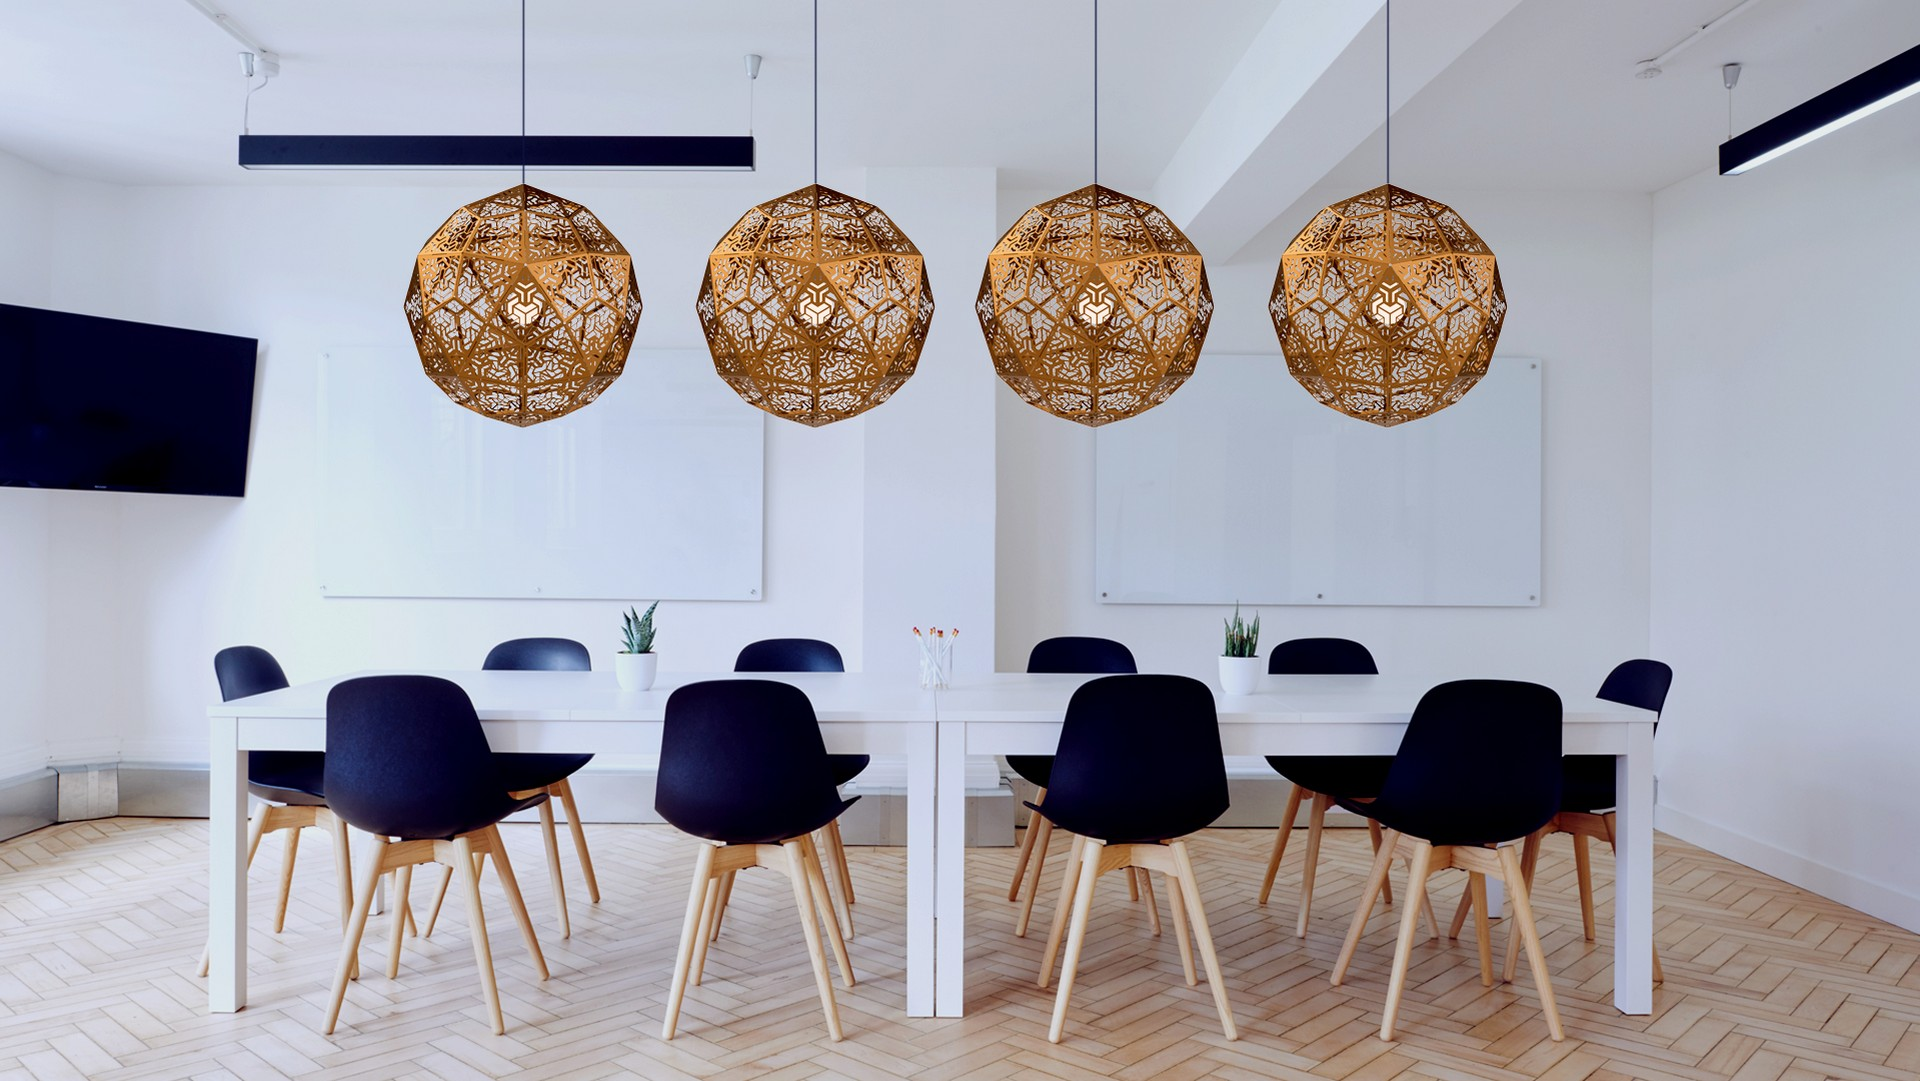 lampabura_pendant_lamp_formatervezes_lighting_design_remion_04